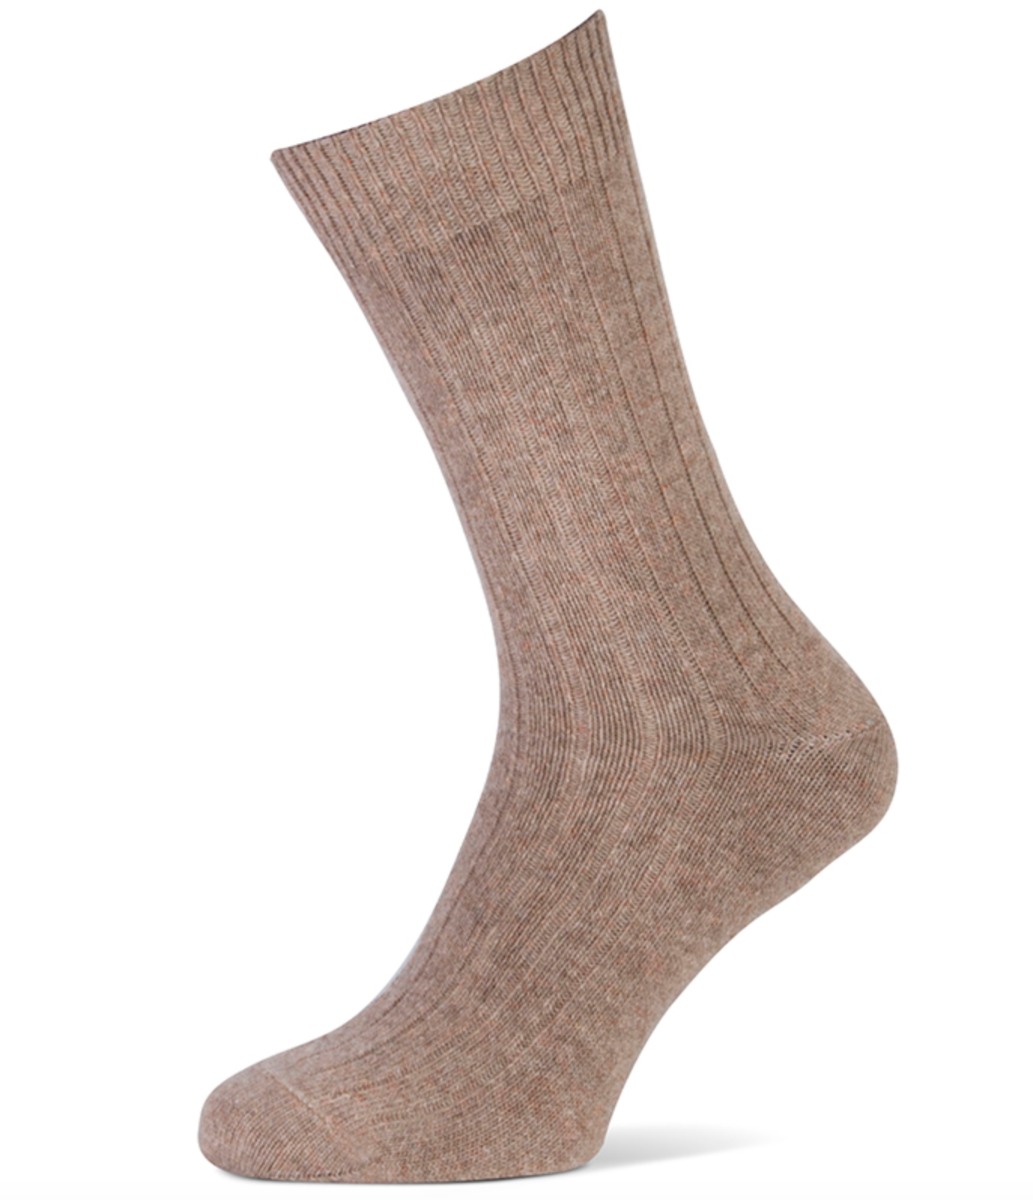 Herensokken met cashmere wol-43/46-Taupe